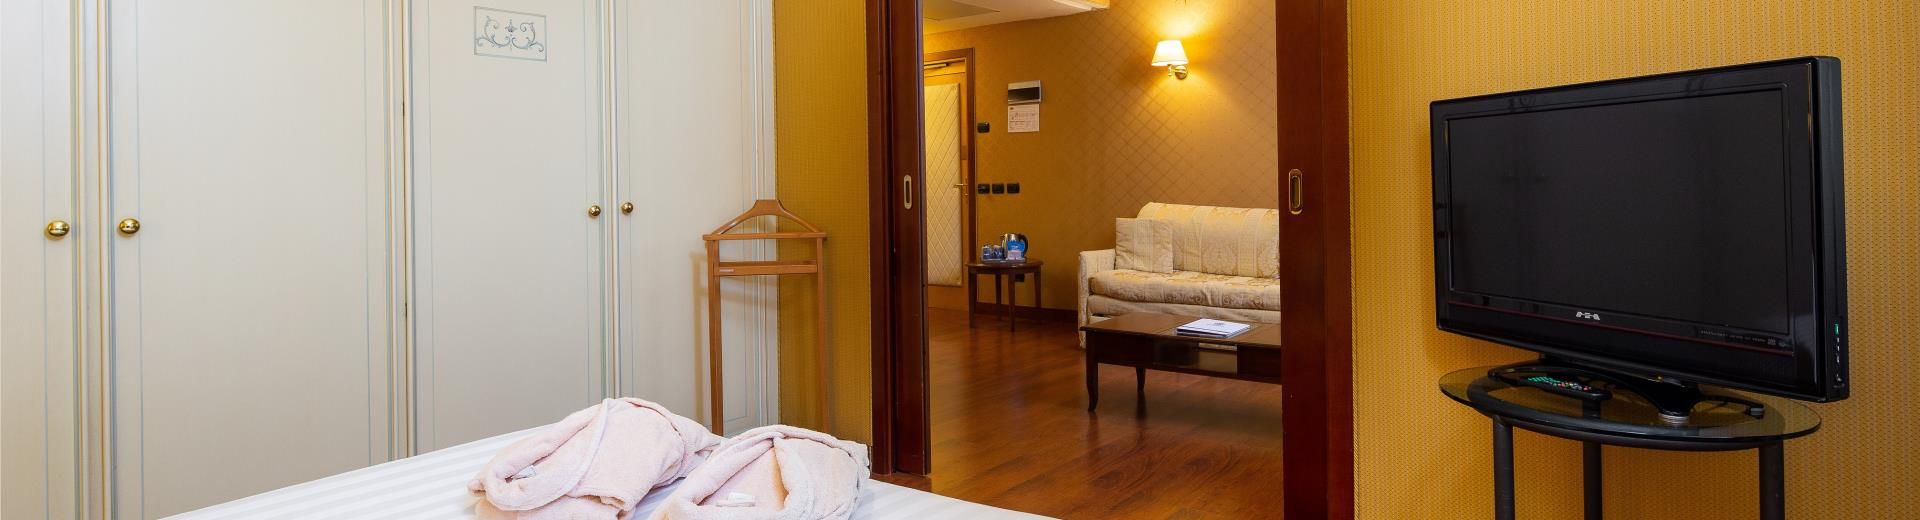 If you''''re travelling with family or friends and looking for accommodation near Milan Linate Airport, choose the Family Rooms of BW Air Hotel Linate: space, comfort and 4-star amenities just 500 meters from the airport!